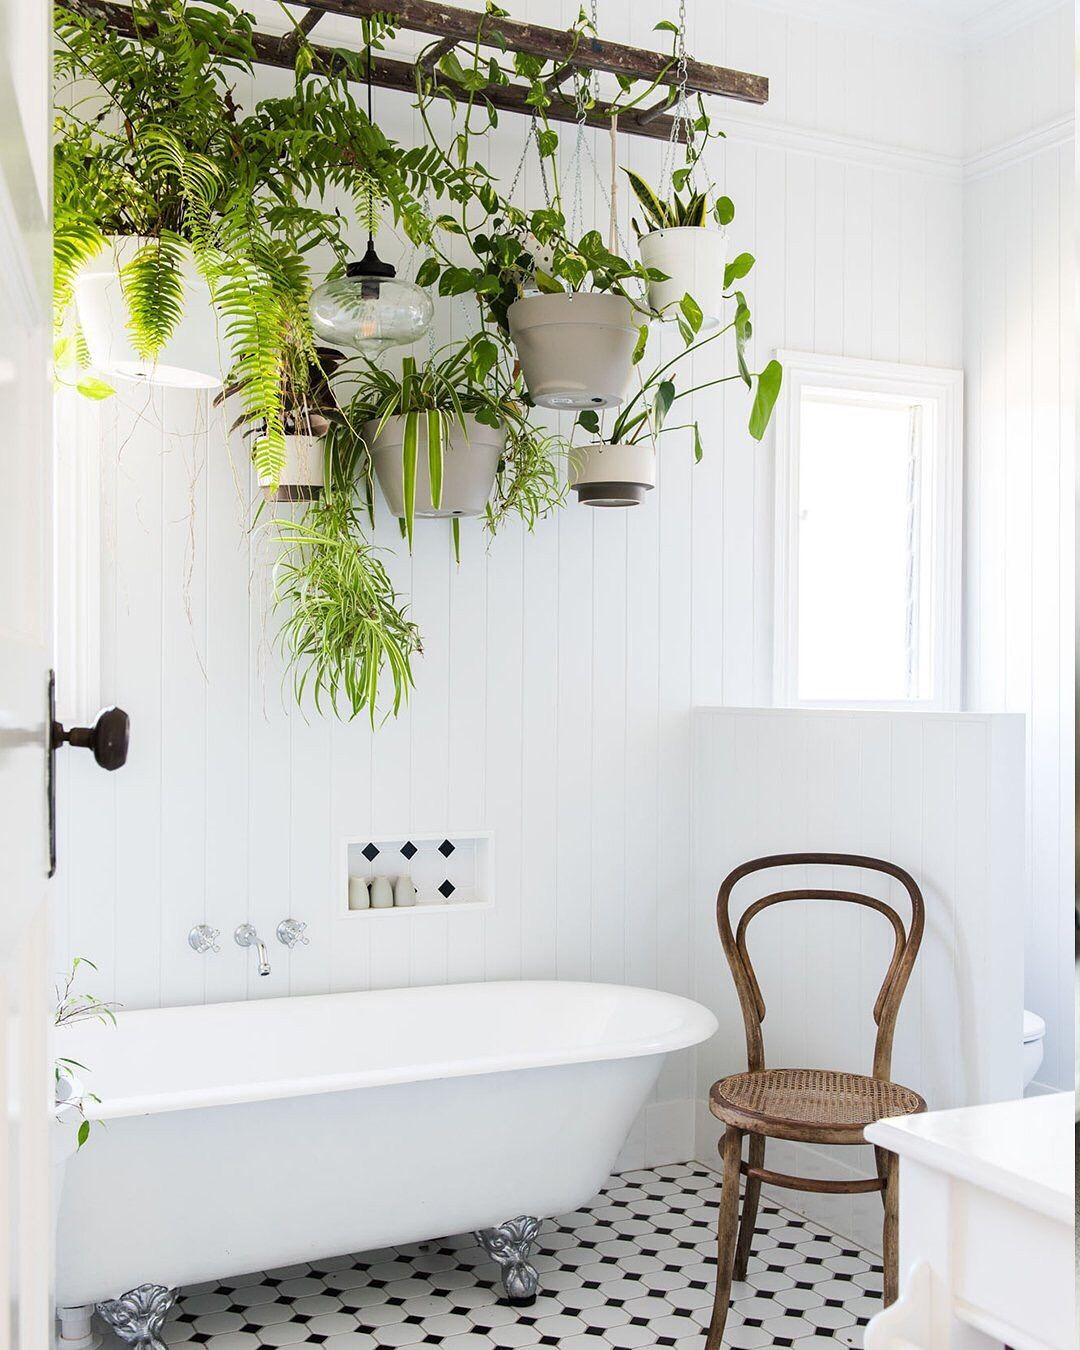 Bathroom with a white tub and a brown chair that adorn the floor while plants of different types hang on the tub